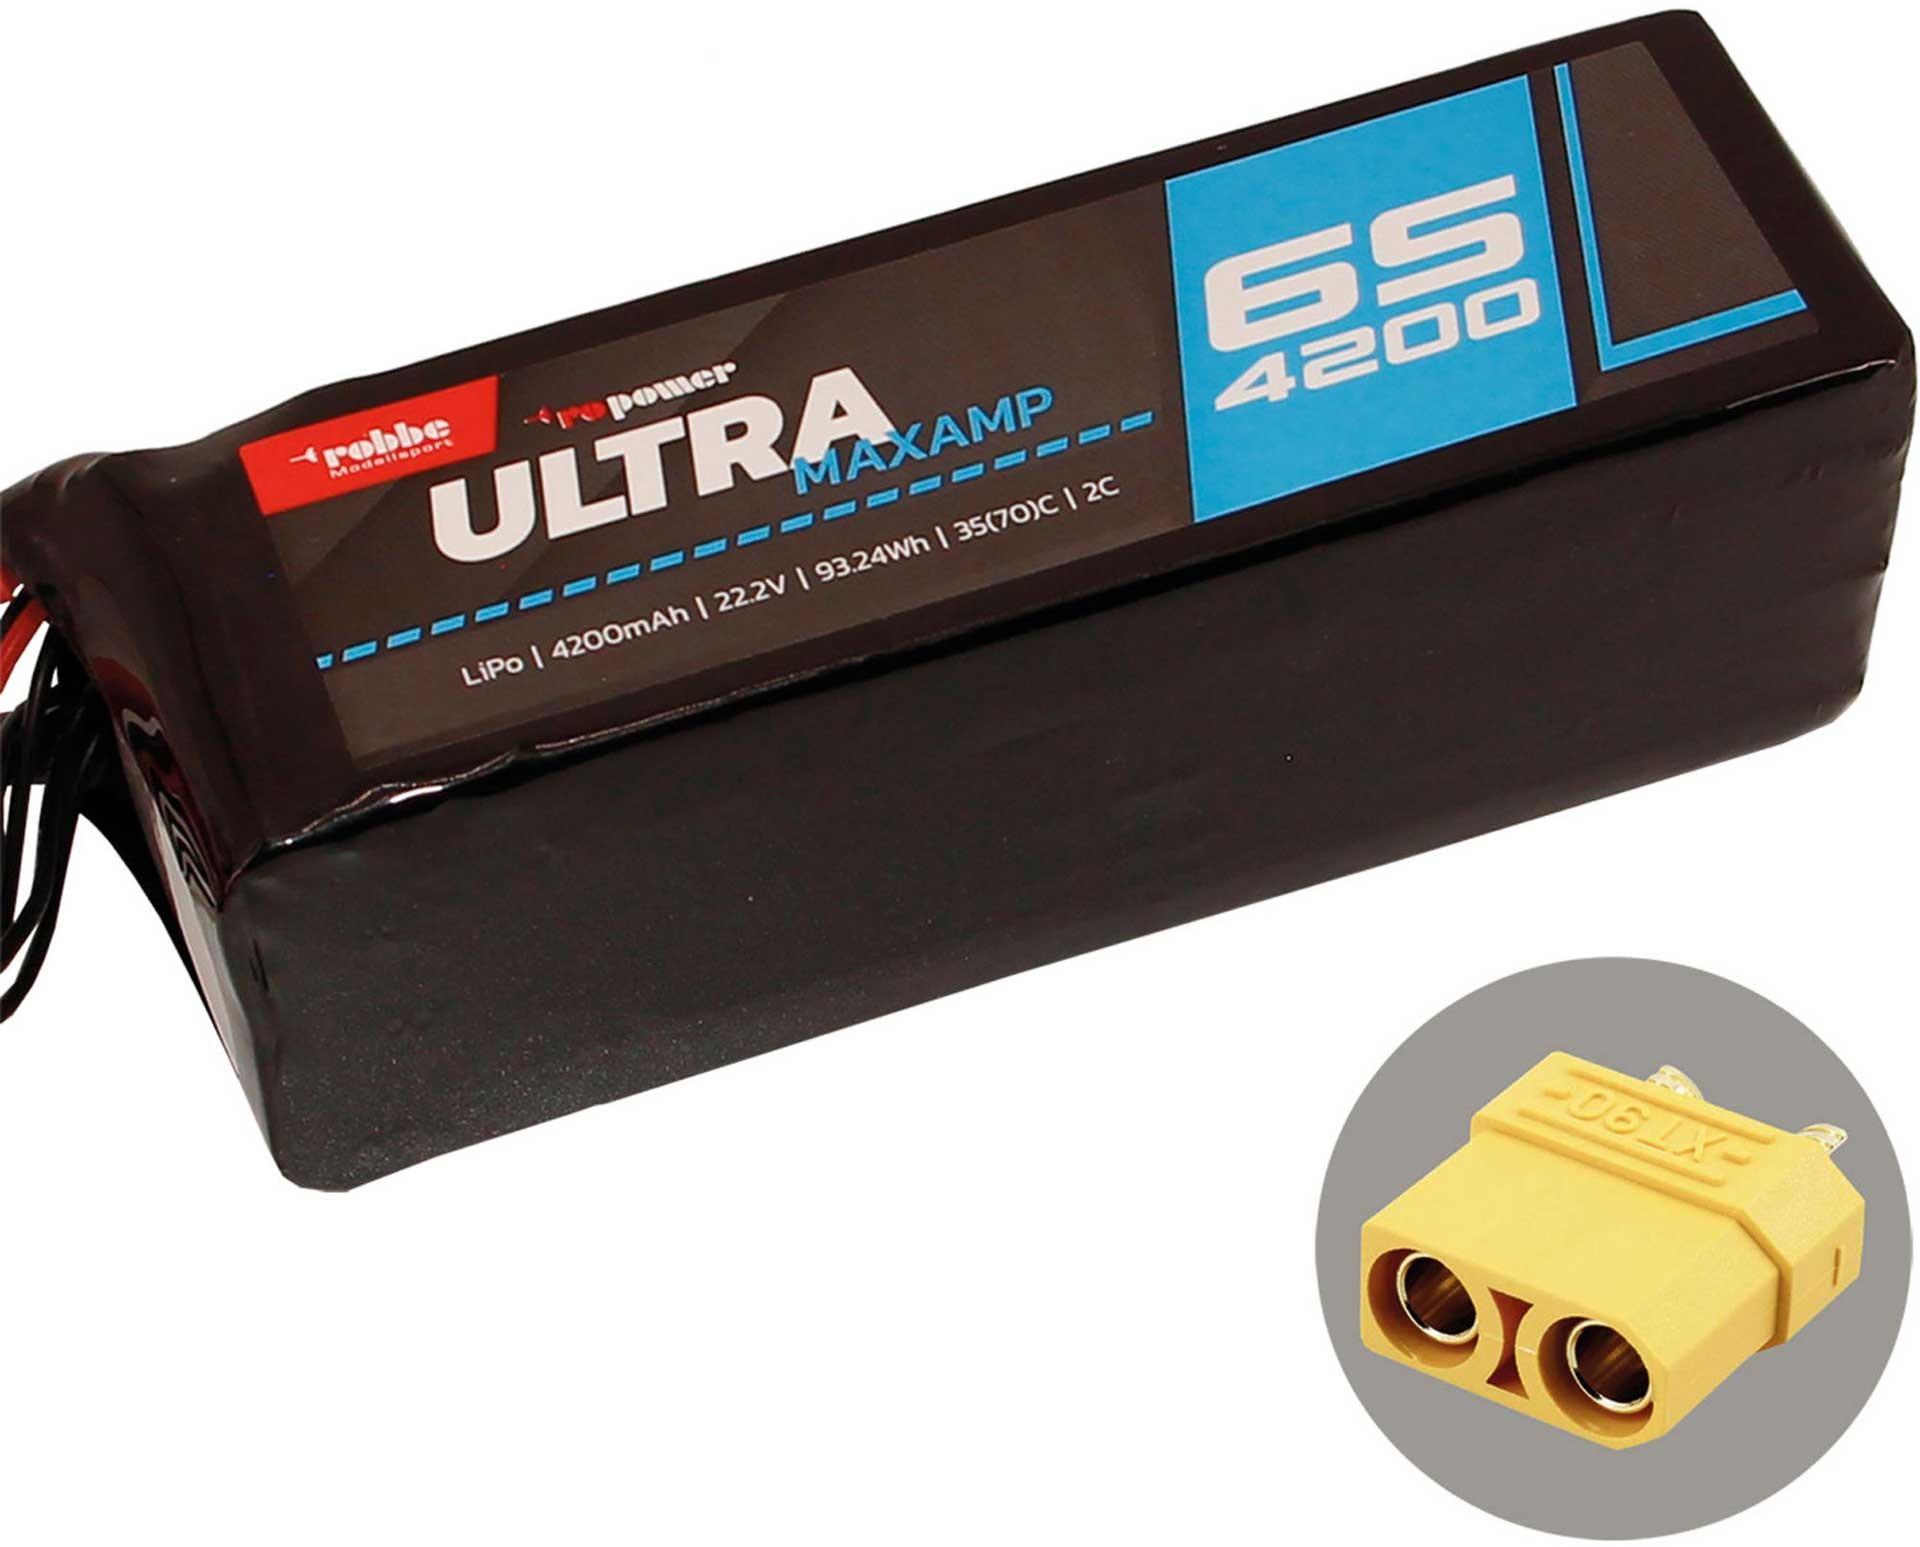 ROBBE RO-POWER ULTRA MAXAMP 4200MAH 22,2 VOLT